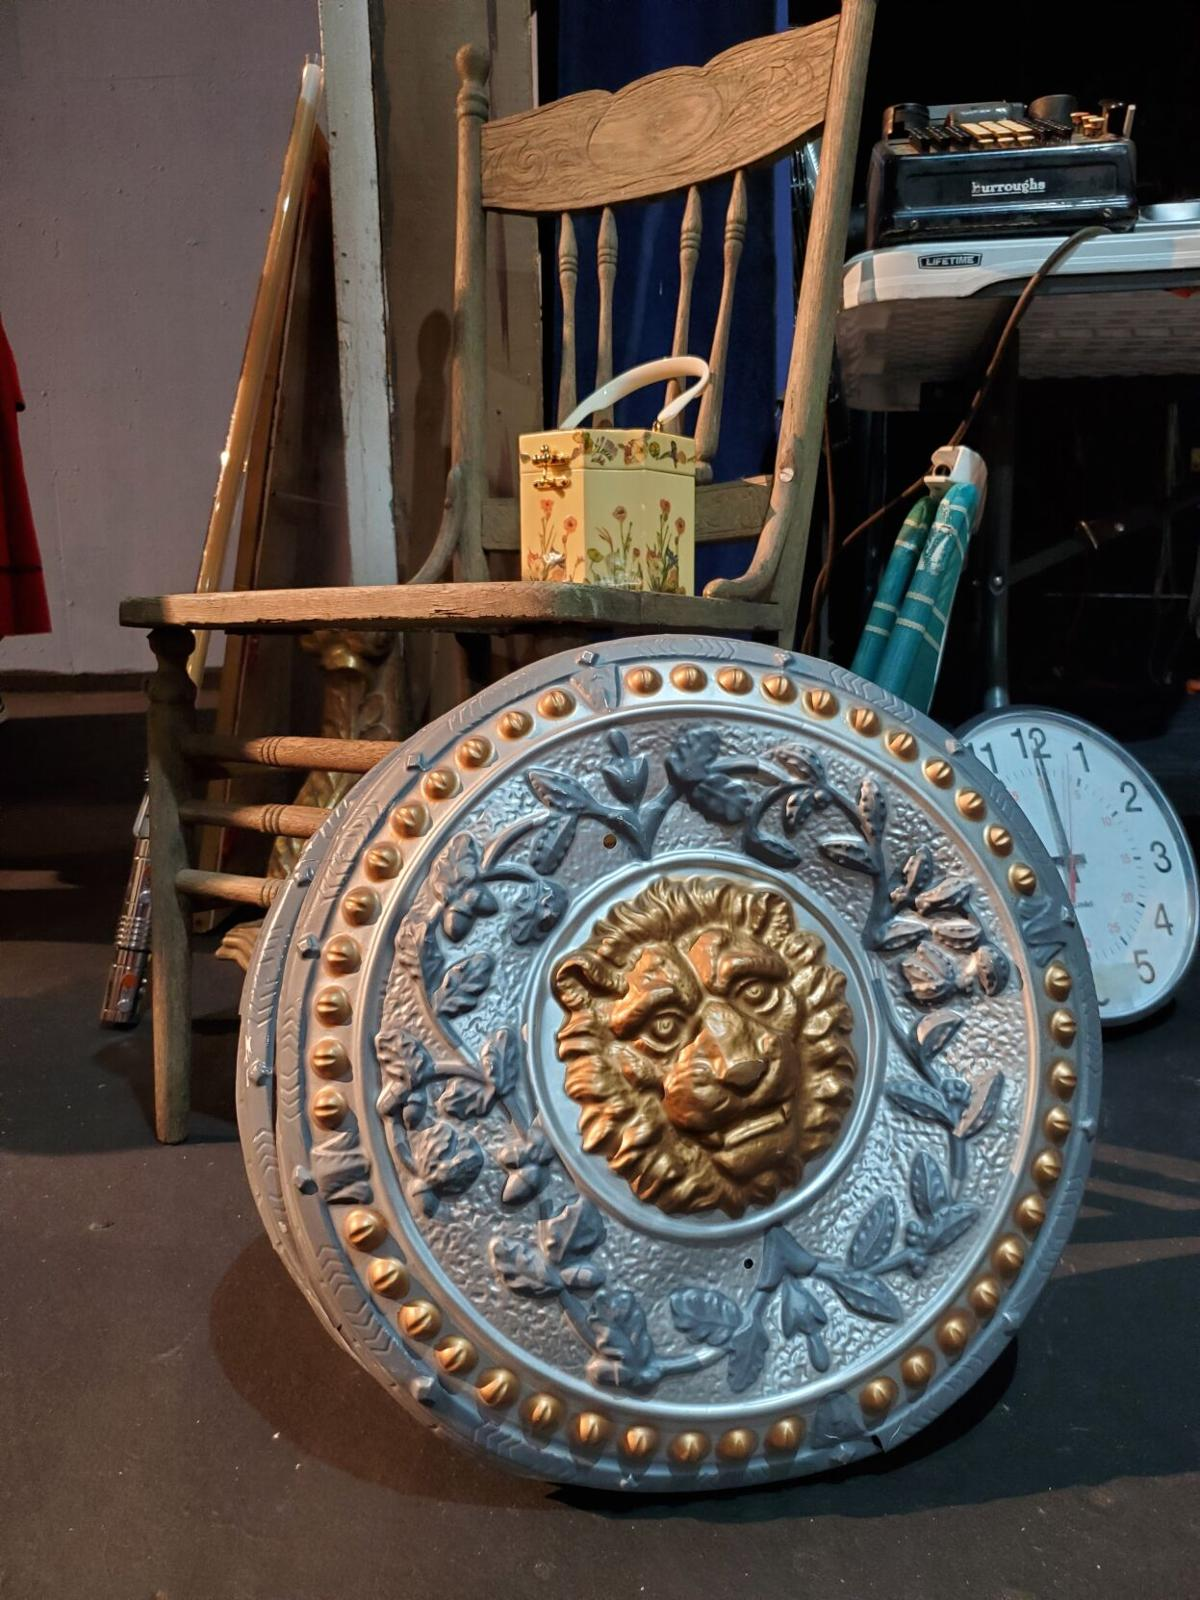 Rome Little Theatre hosts costume and prop sale at the DeSoto; continues Saturday